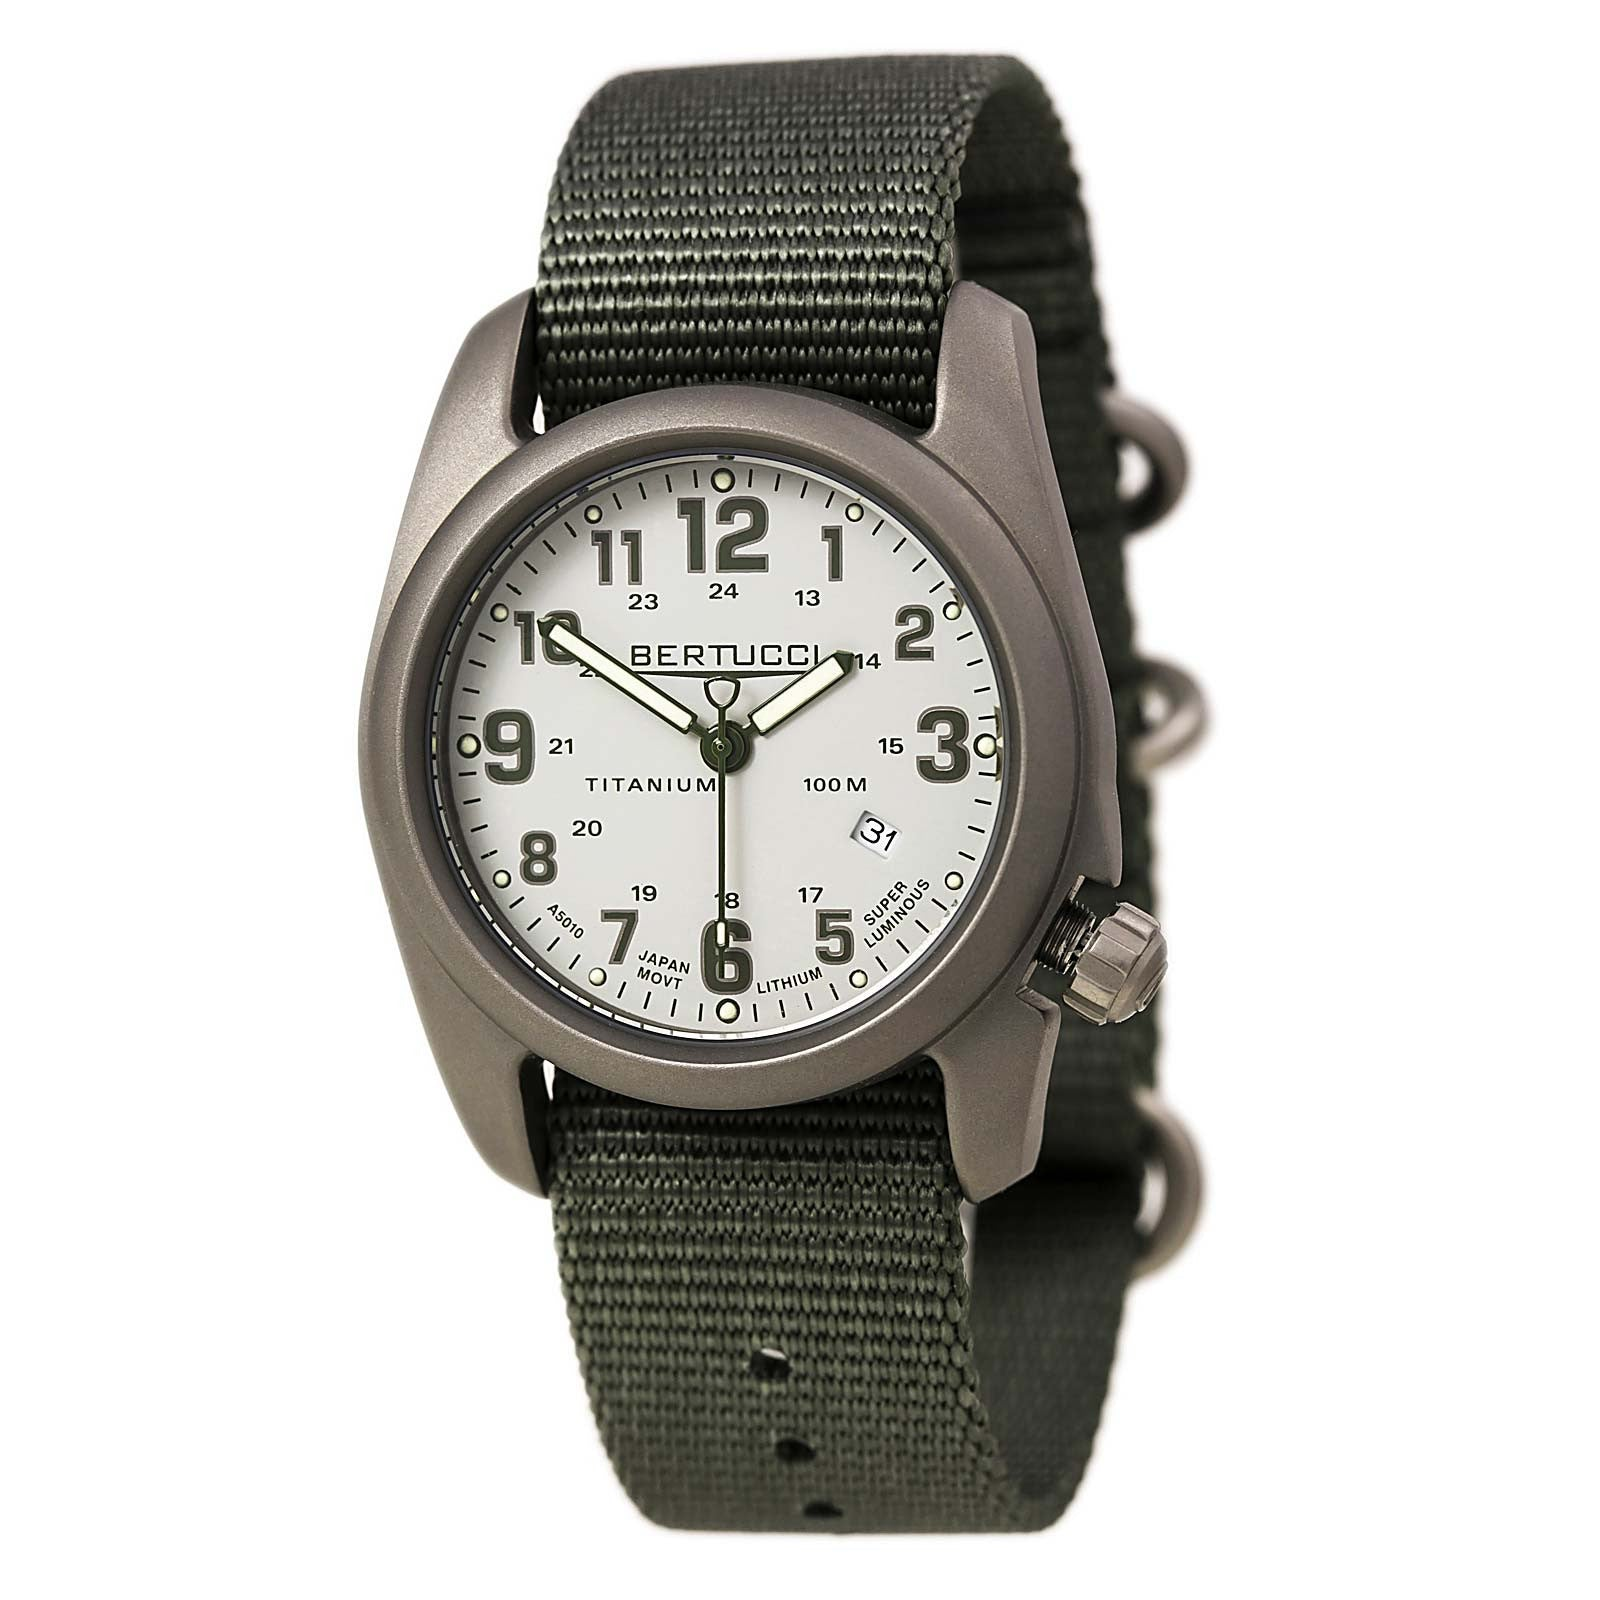 Bertucci 12706 Men's A-2T Field Colors White Dial Defender Drab Nylon Strap Watch